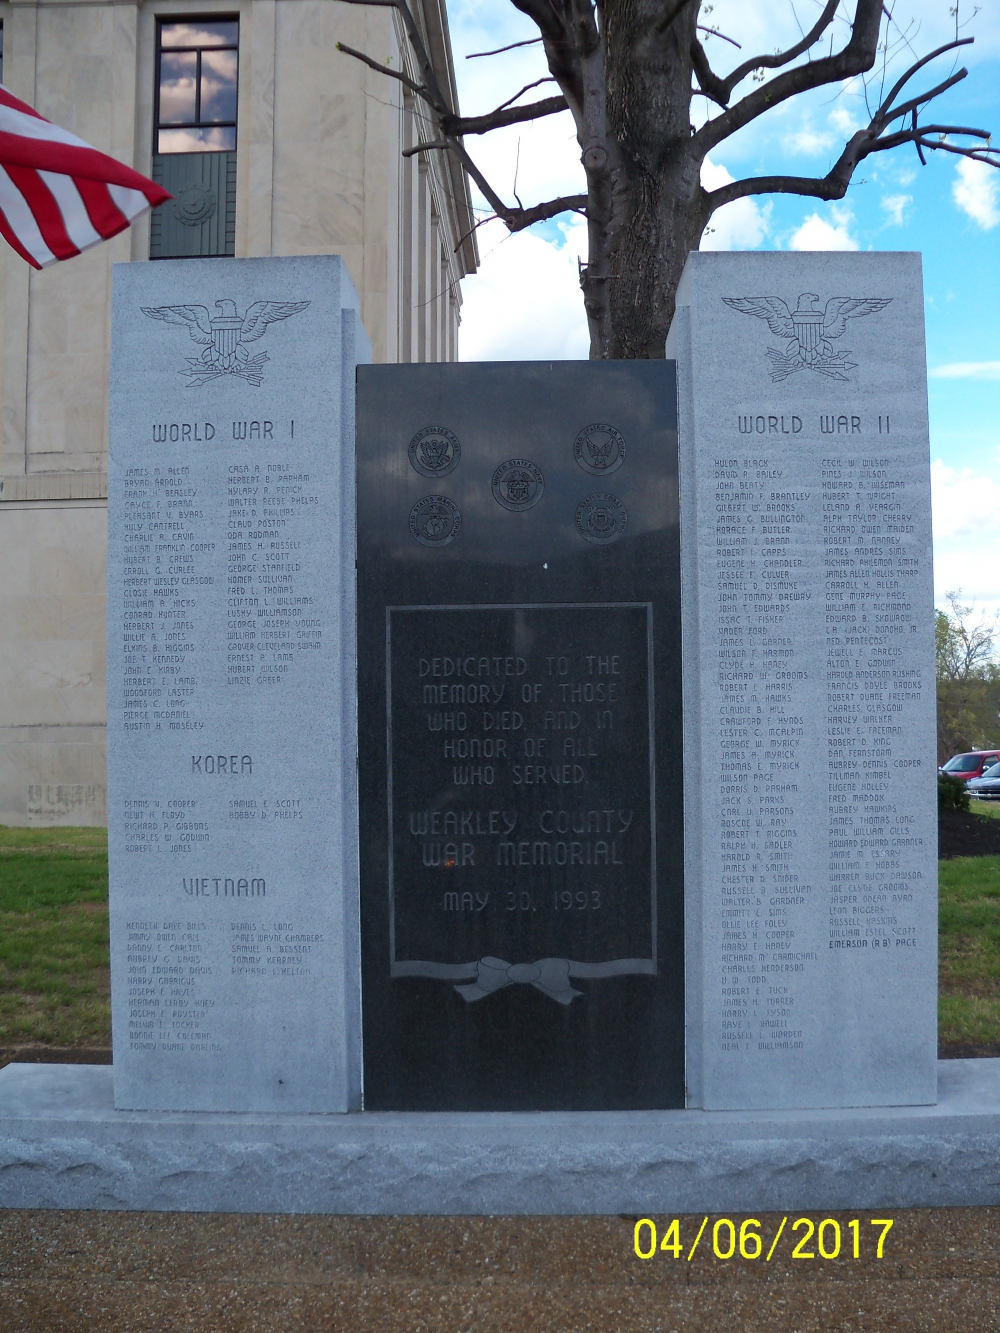 Weakley County War Memorial